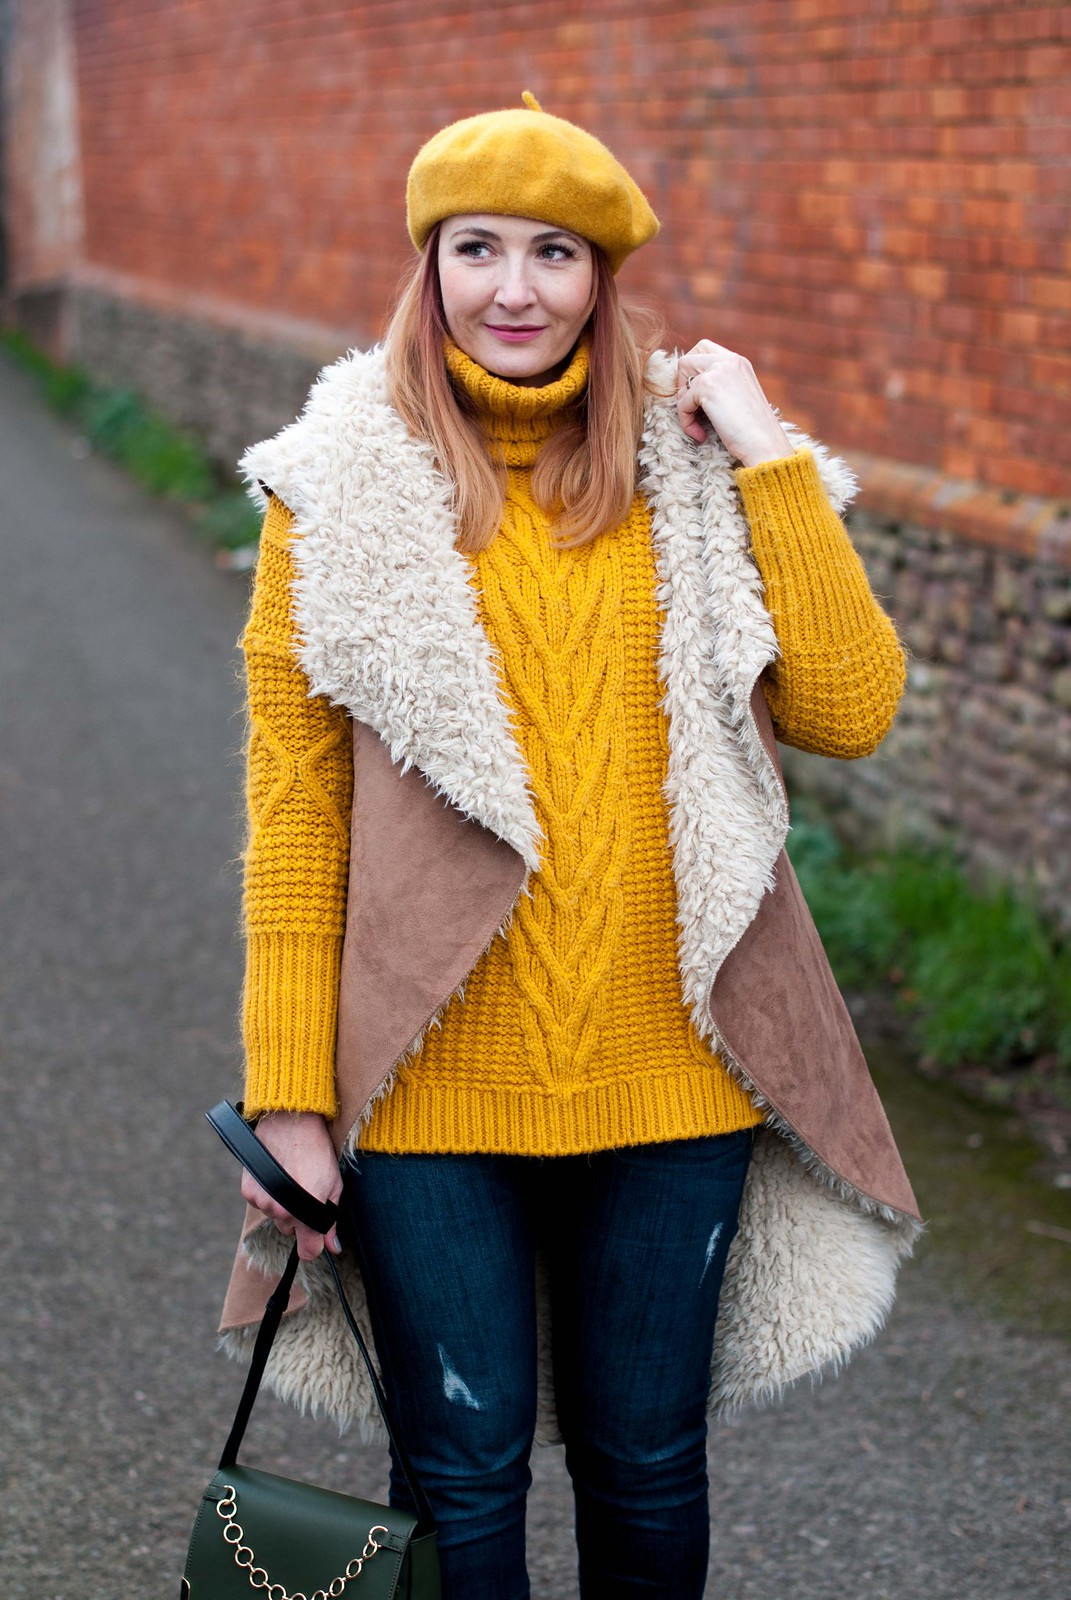 A Shearling Gilet Instead of a Winter Coat, Over 40 Style: Faux shearling gilet, yellow chunky sweater, skinny jeans, ankle boots and beret | Not Dressed As Lamb, Over 40 Style: Faux shearling gilet, yellow chunky sweater, skinny jeans, ankle boots and beret | Not Dressed As Lamb